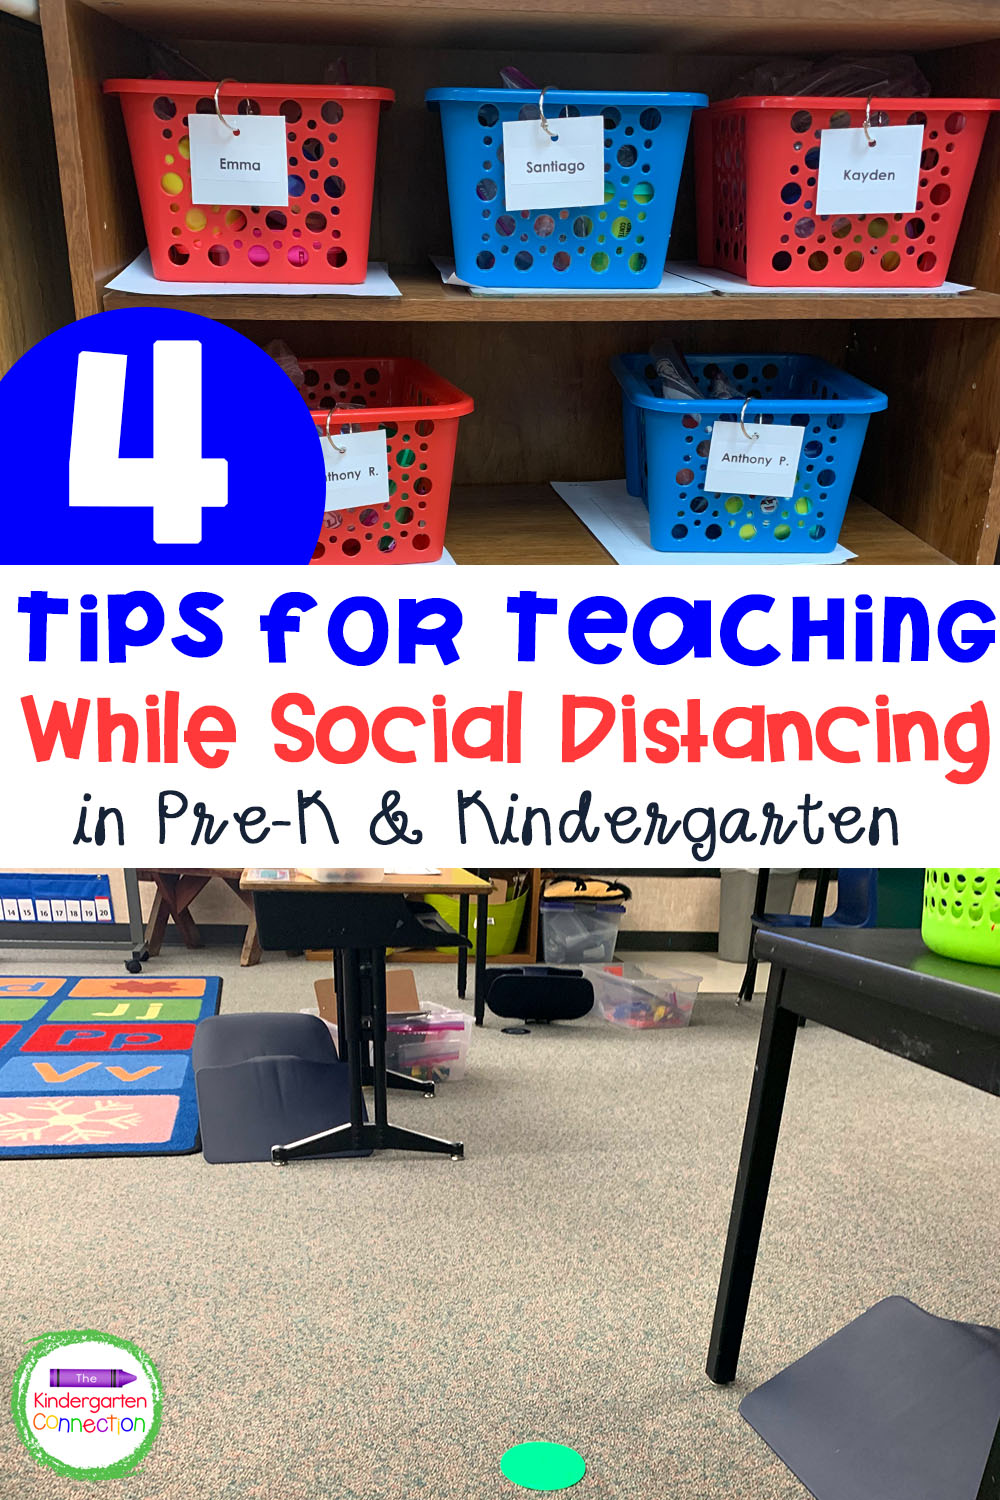 Check out these helpful Tips for Teaching with Social Distancing perfect for Pre-K and Kindergarten classrooms!